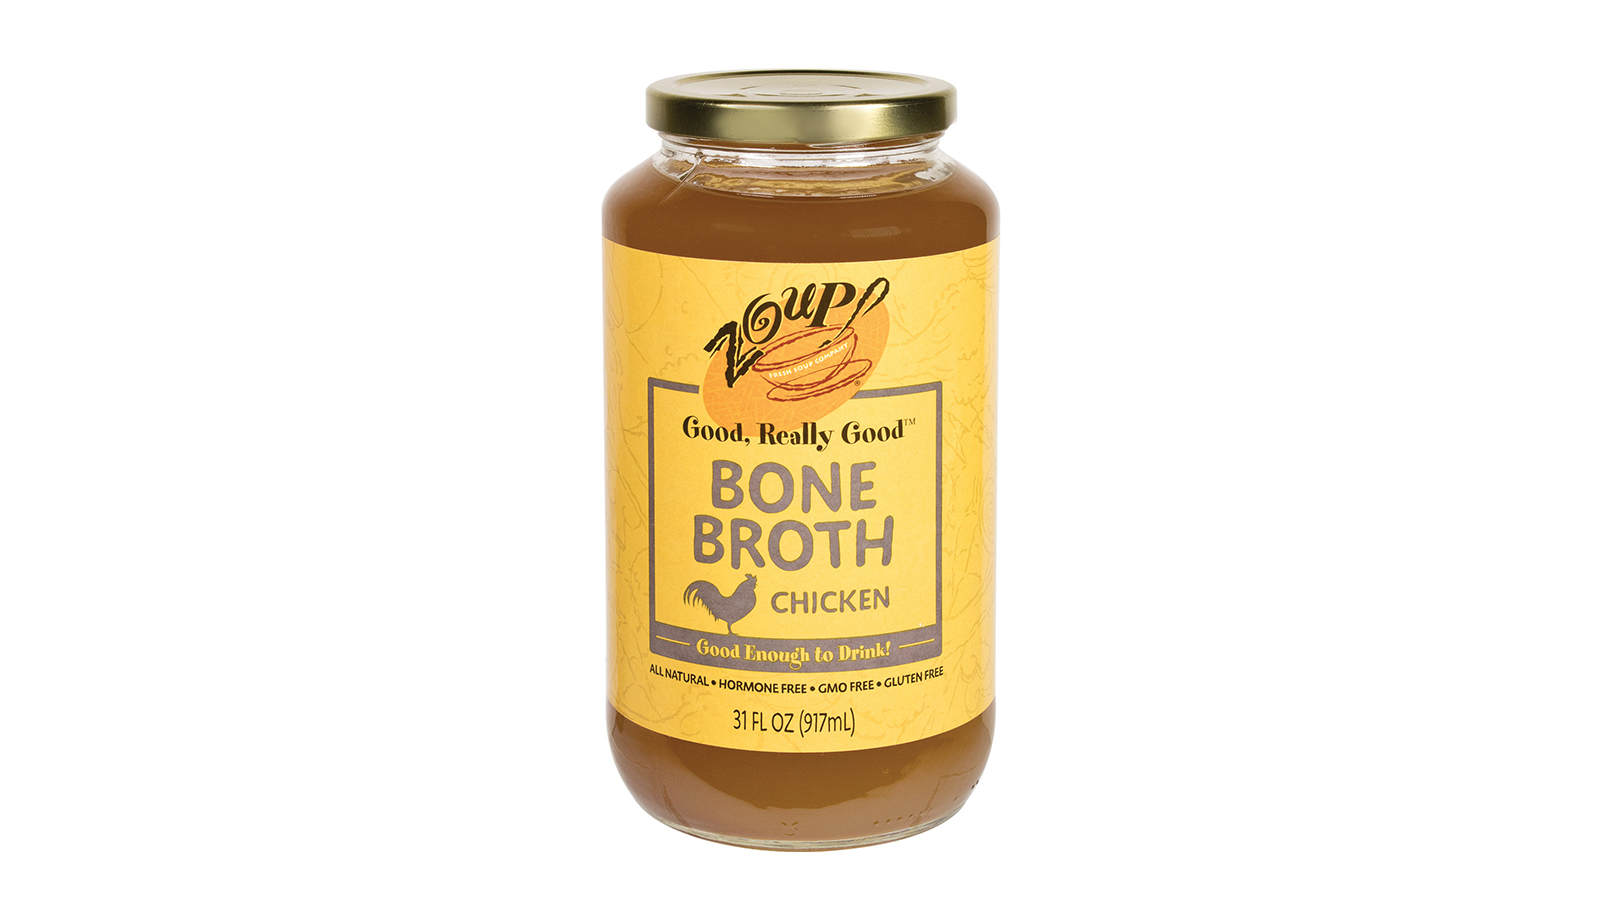 zoup bone broth